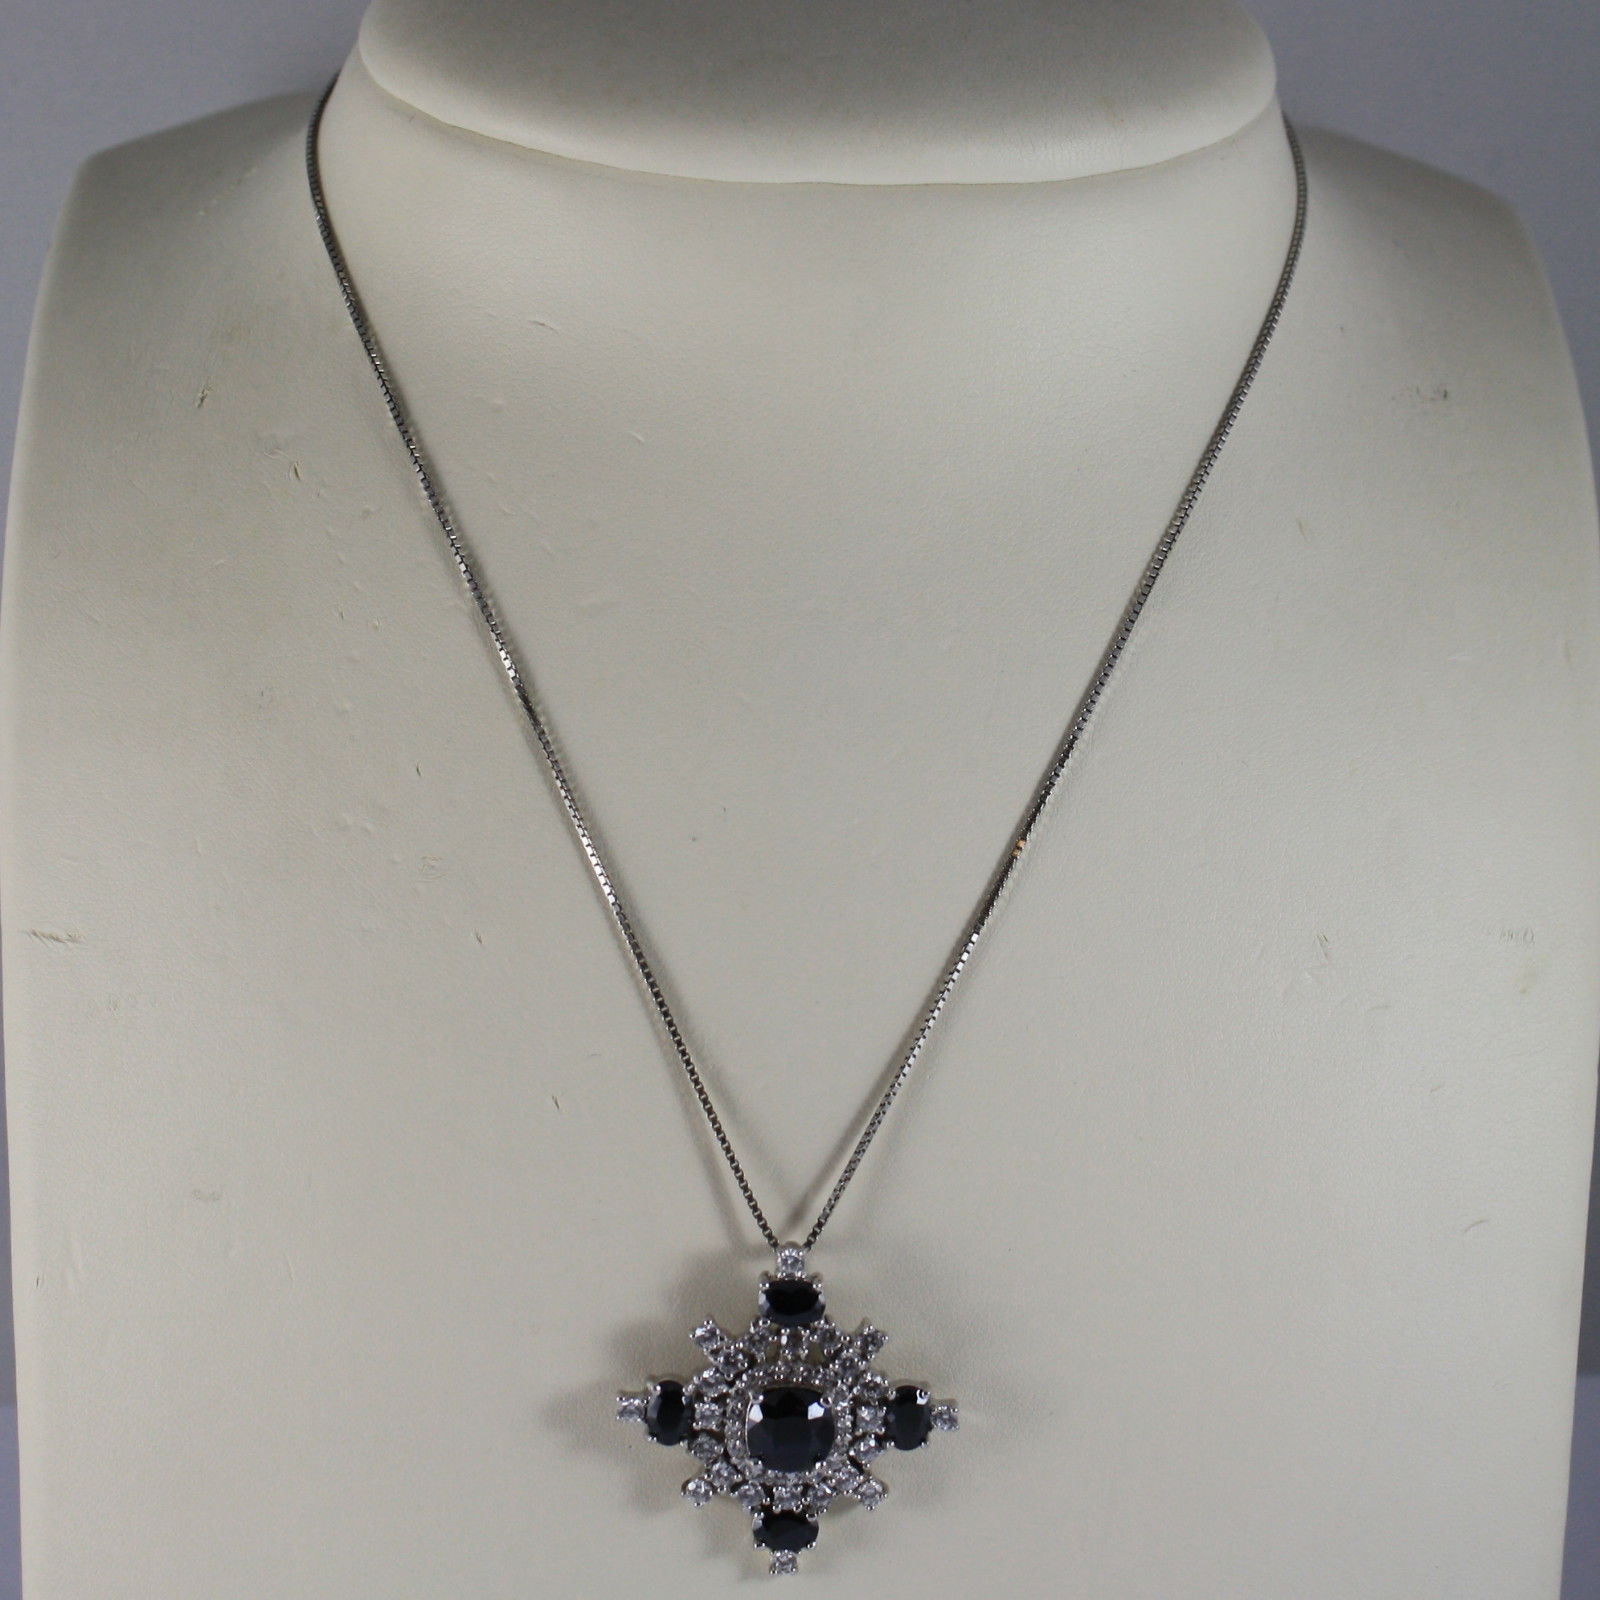 .925 RHODIUM SILVER NECKLACE WITH BLACK CRISTALS AND TRANSPARENT ZIRCONIA